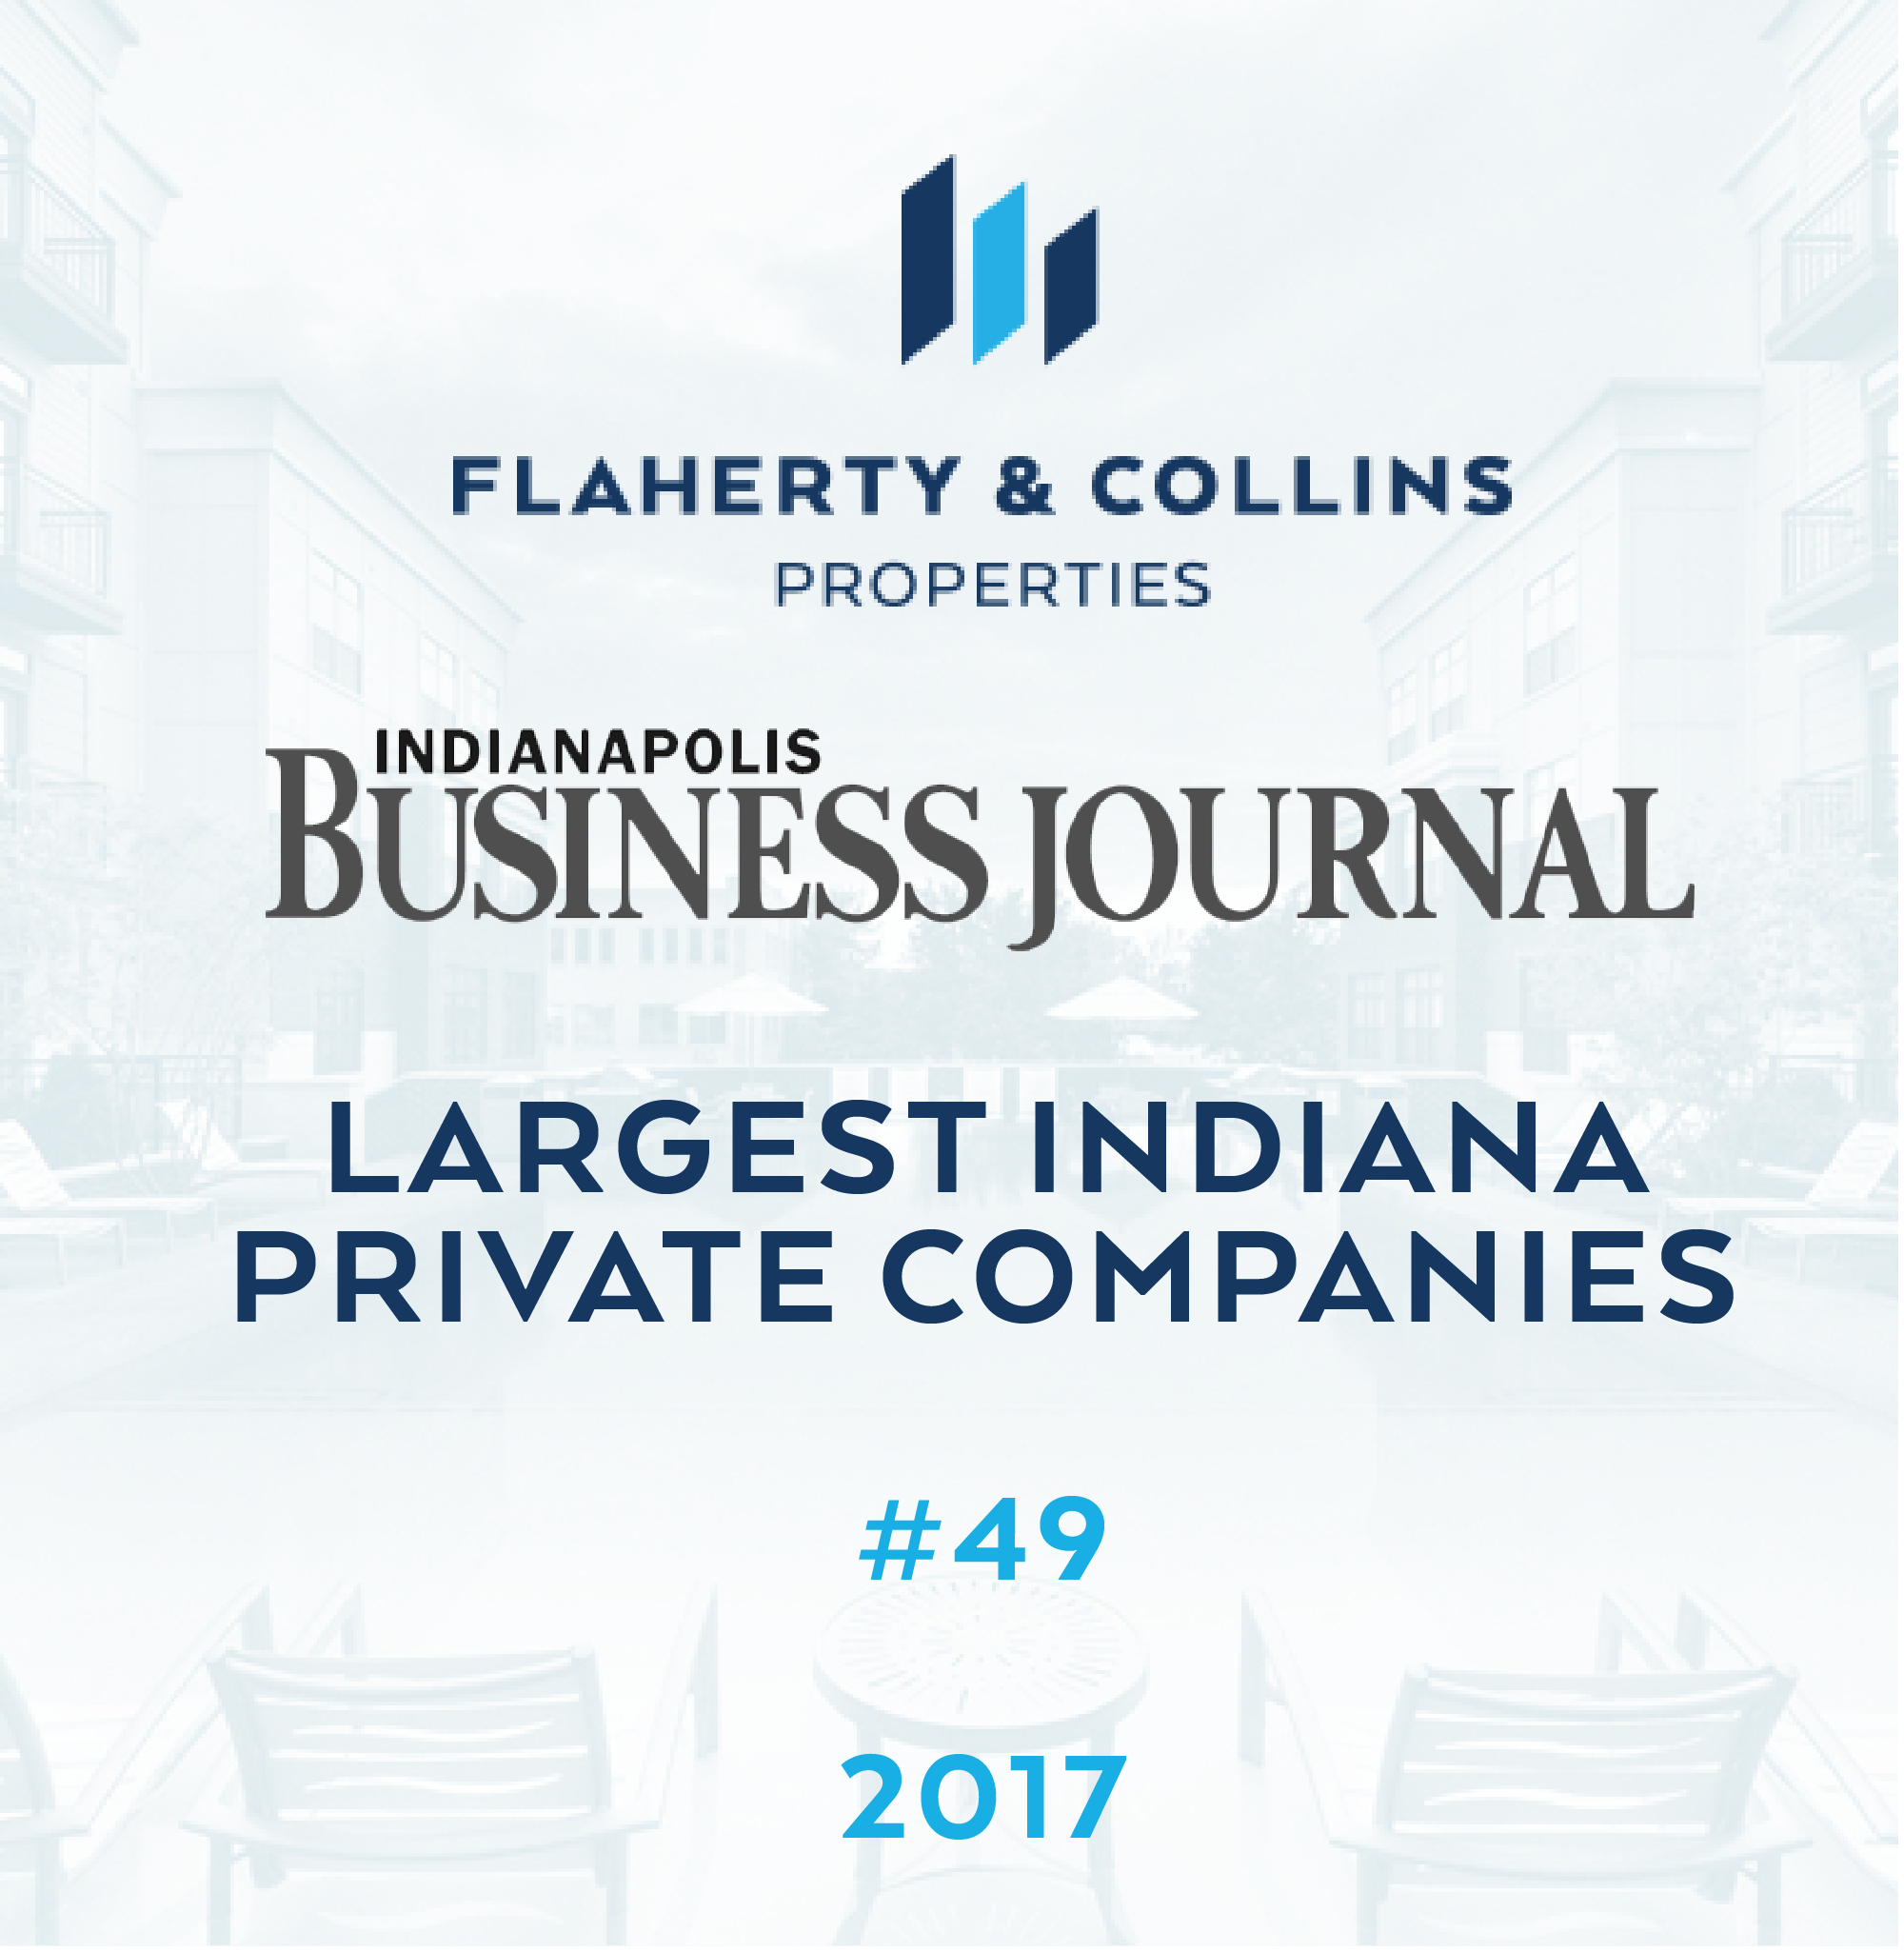 Flaherty U0026 Collins Properties Was Listed Among The Largest Indiana Private  Companies In A List By The Indianapolis Business Journal.